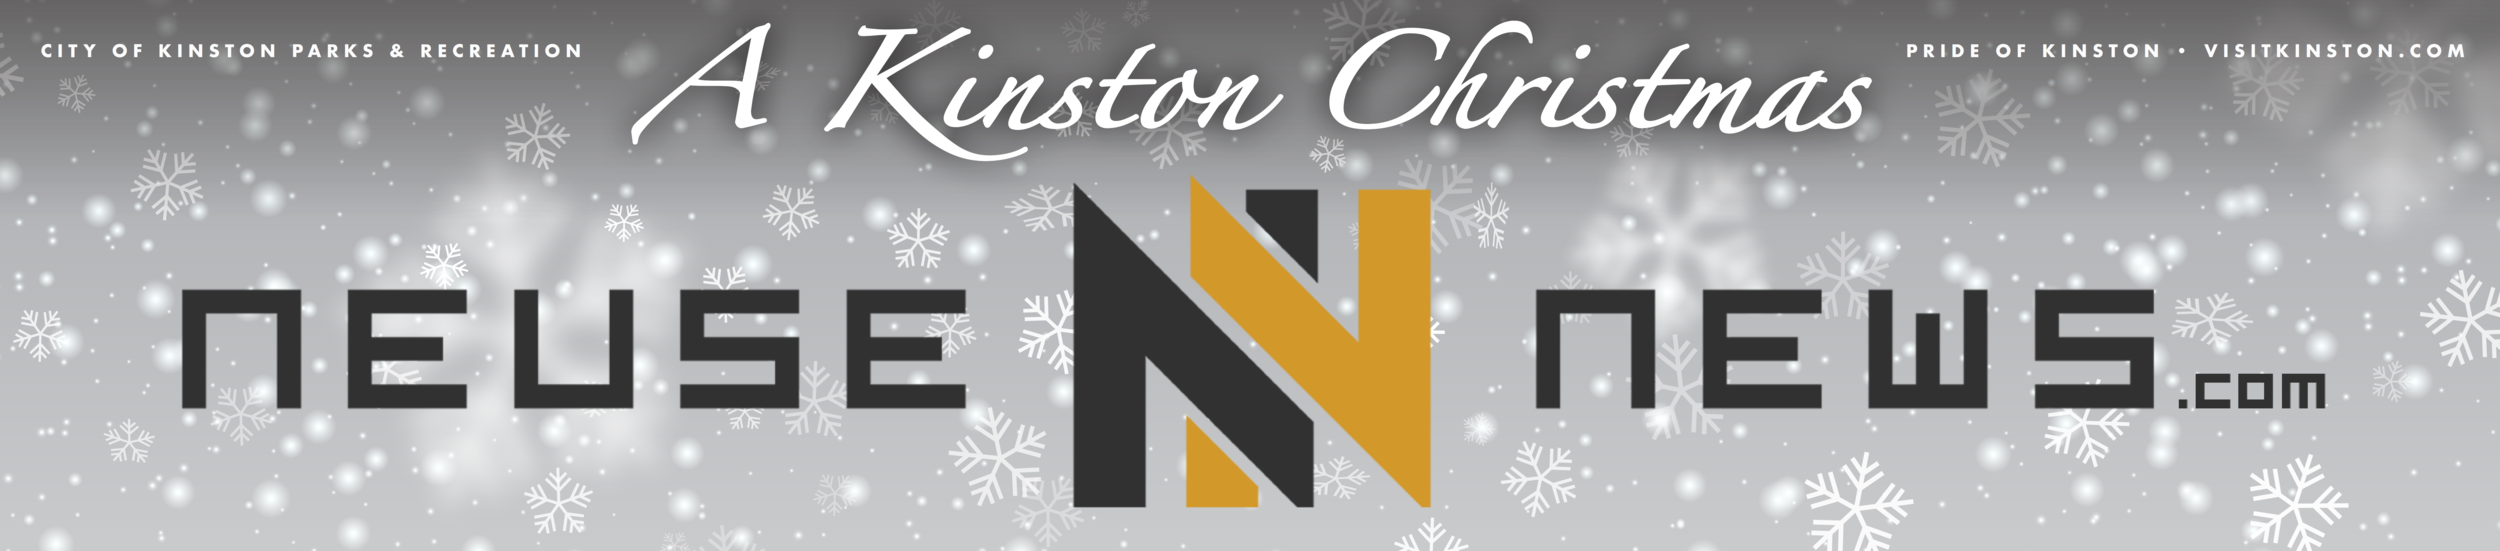 Christmas Banner for truck_001.png